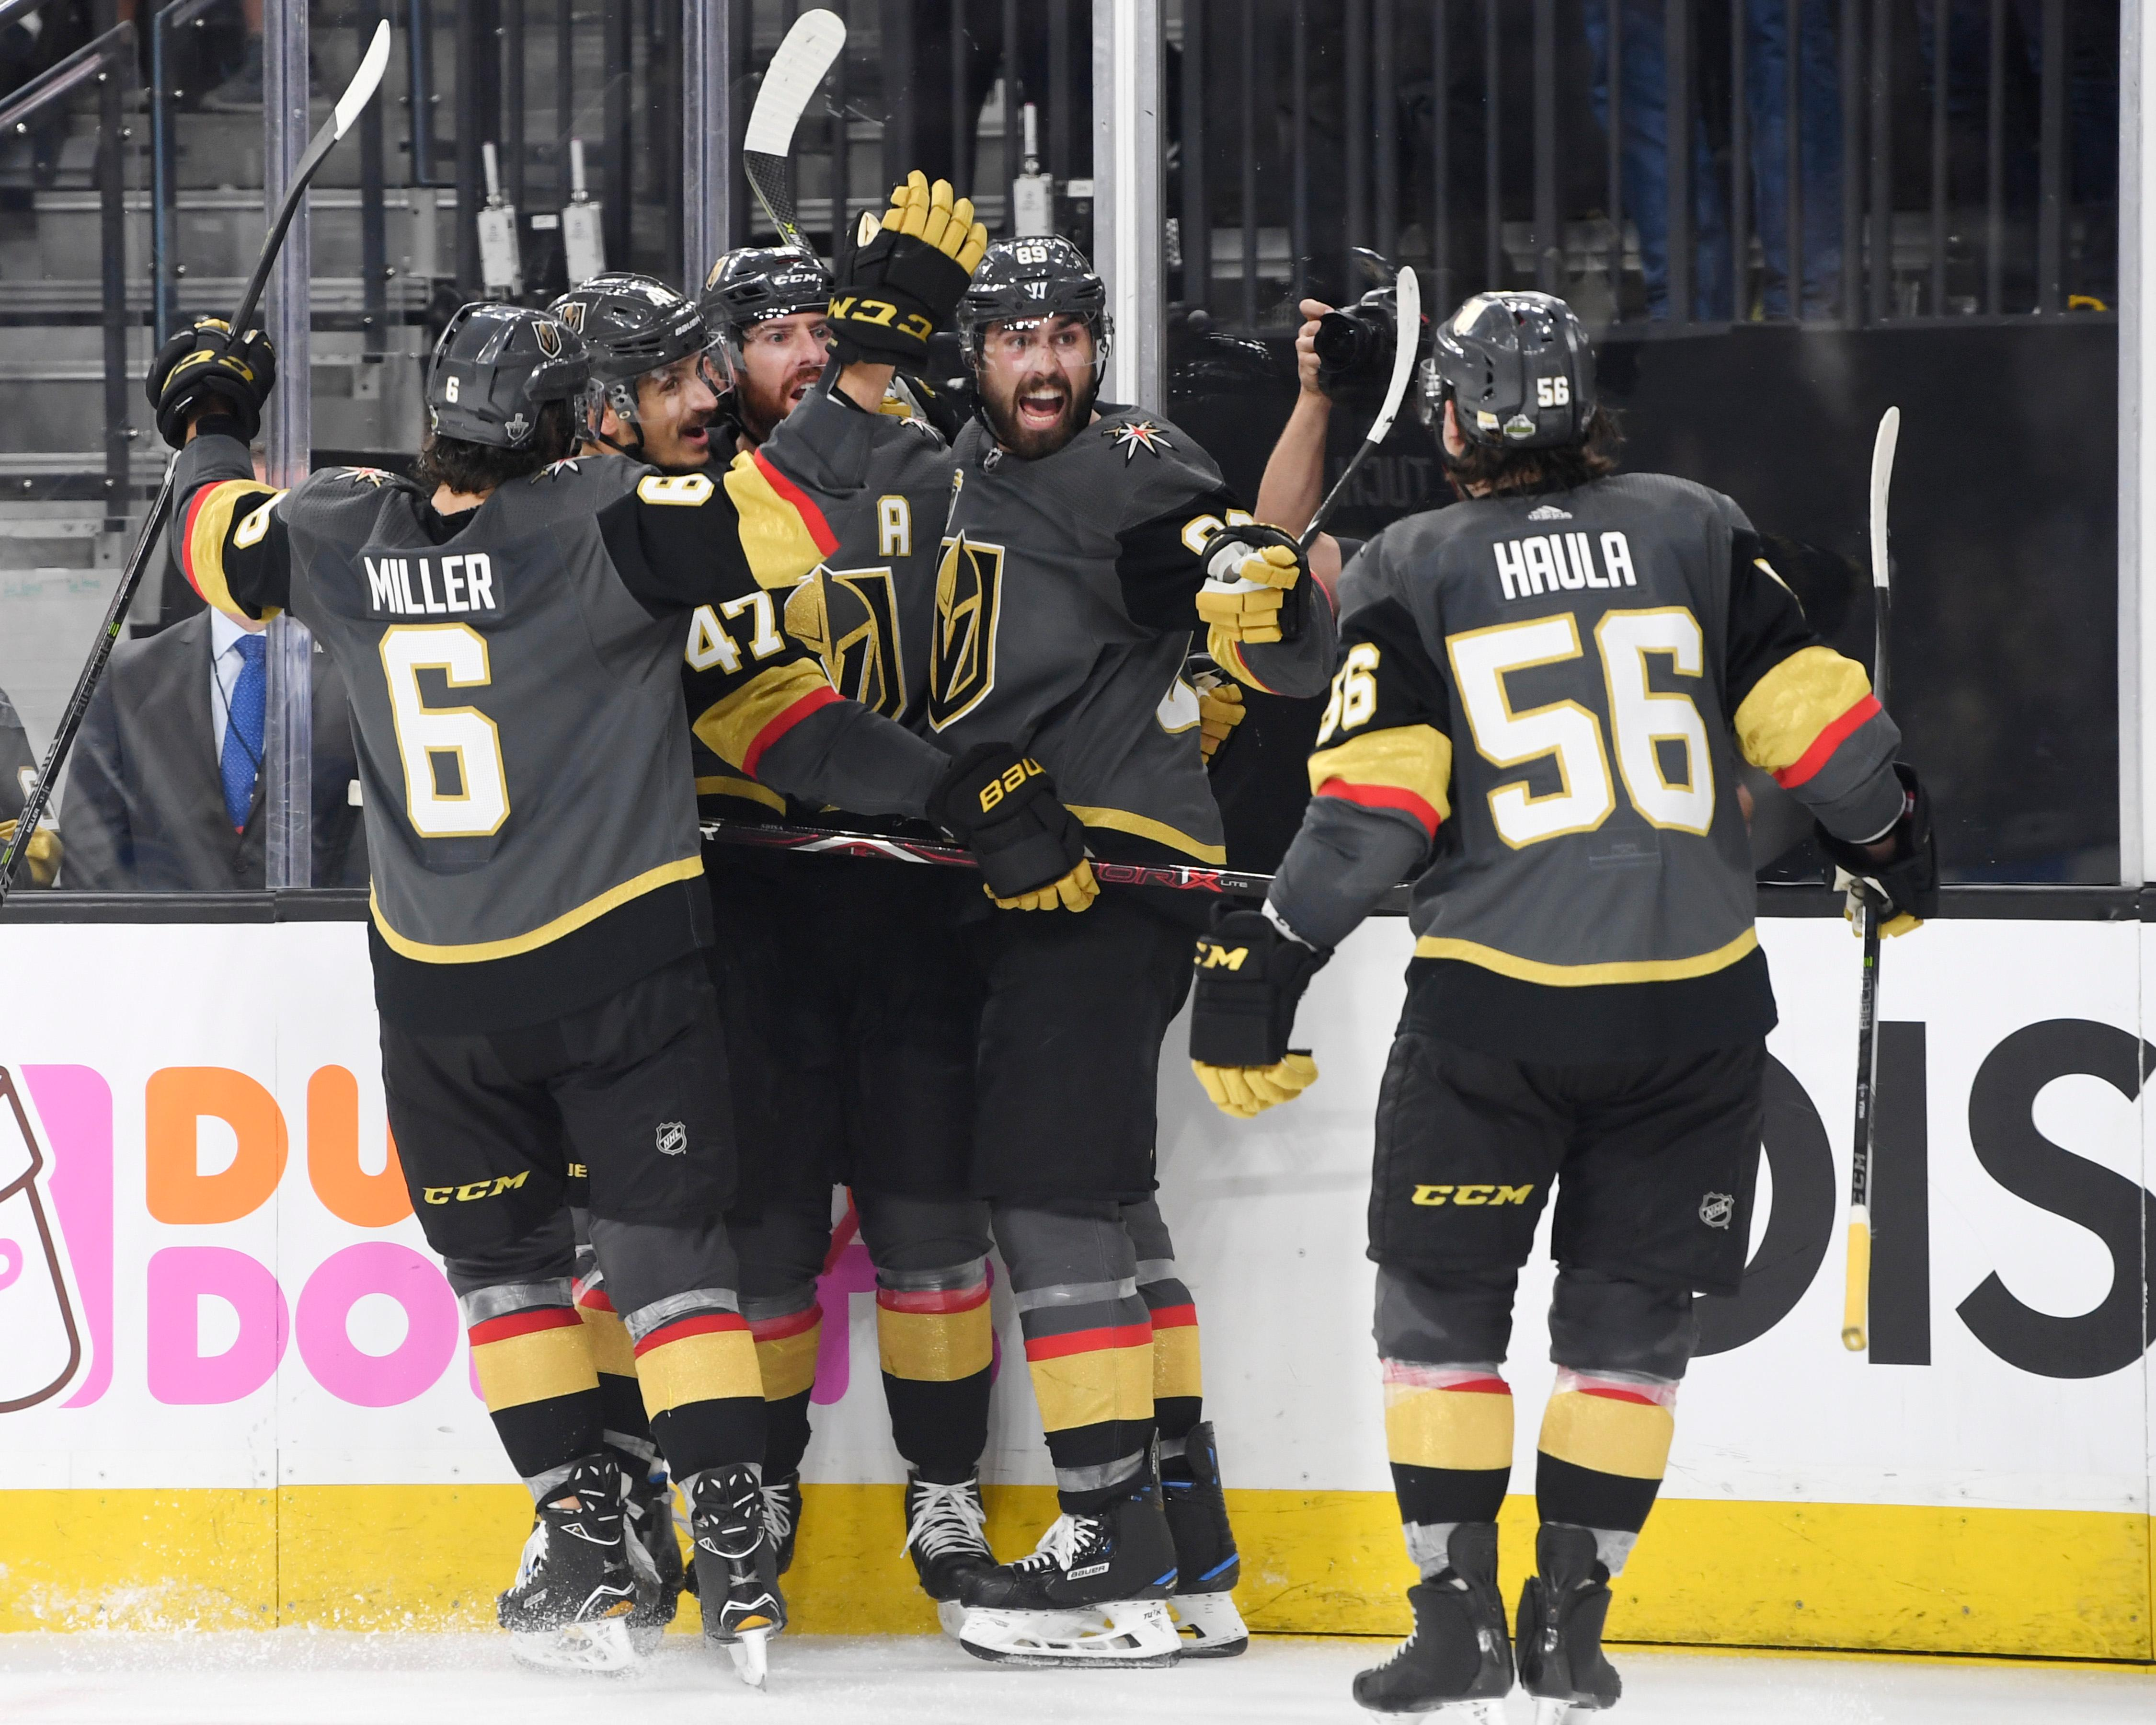 Vegas Golden Knights players celebrate James Neal's goal against the Winnipeg Jets during Game 3 of their NHL hockey Western Conference Final game Wednesday, May 16, 2018, at T-Mobile Arena. CREDIT: Sam Morris/Las Vegas News Bureau